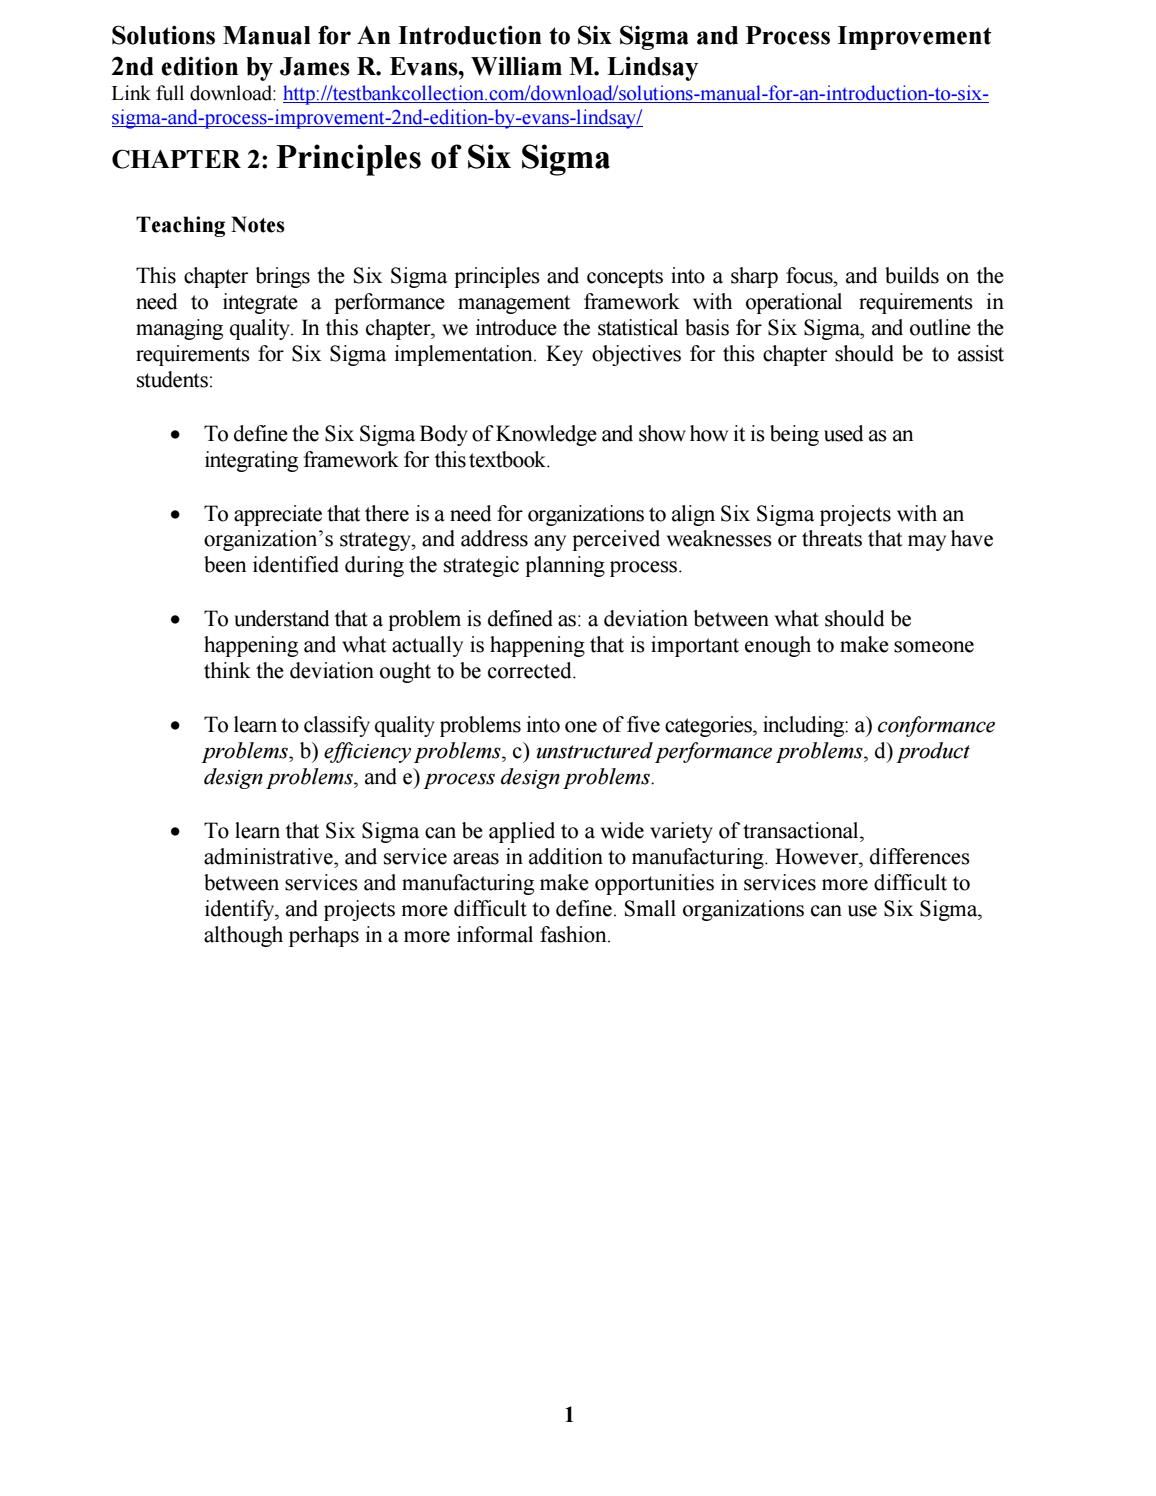 solutions manual for an introduction to six sigma and process rh pinterest com Sharp ManualsOnline Sharp View Cam Cameras